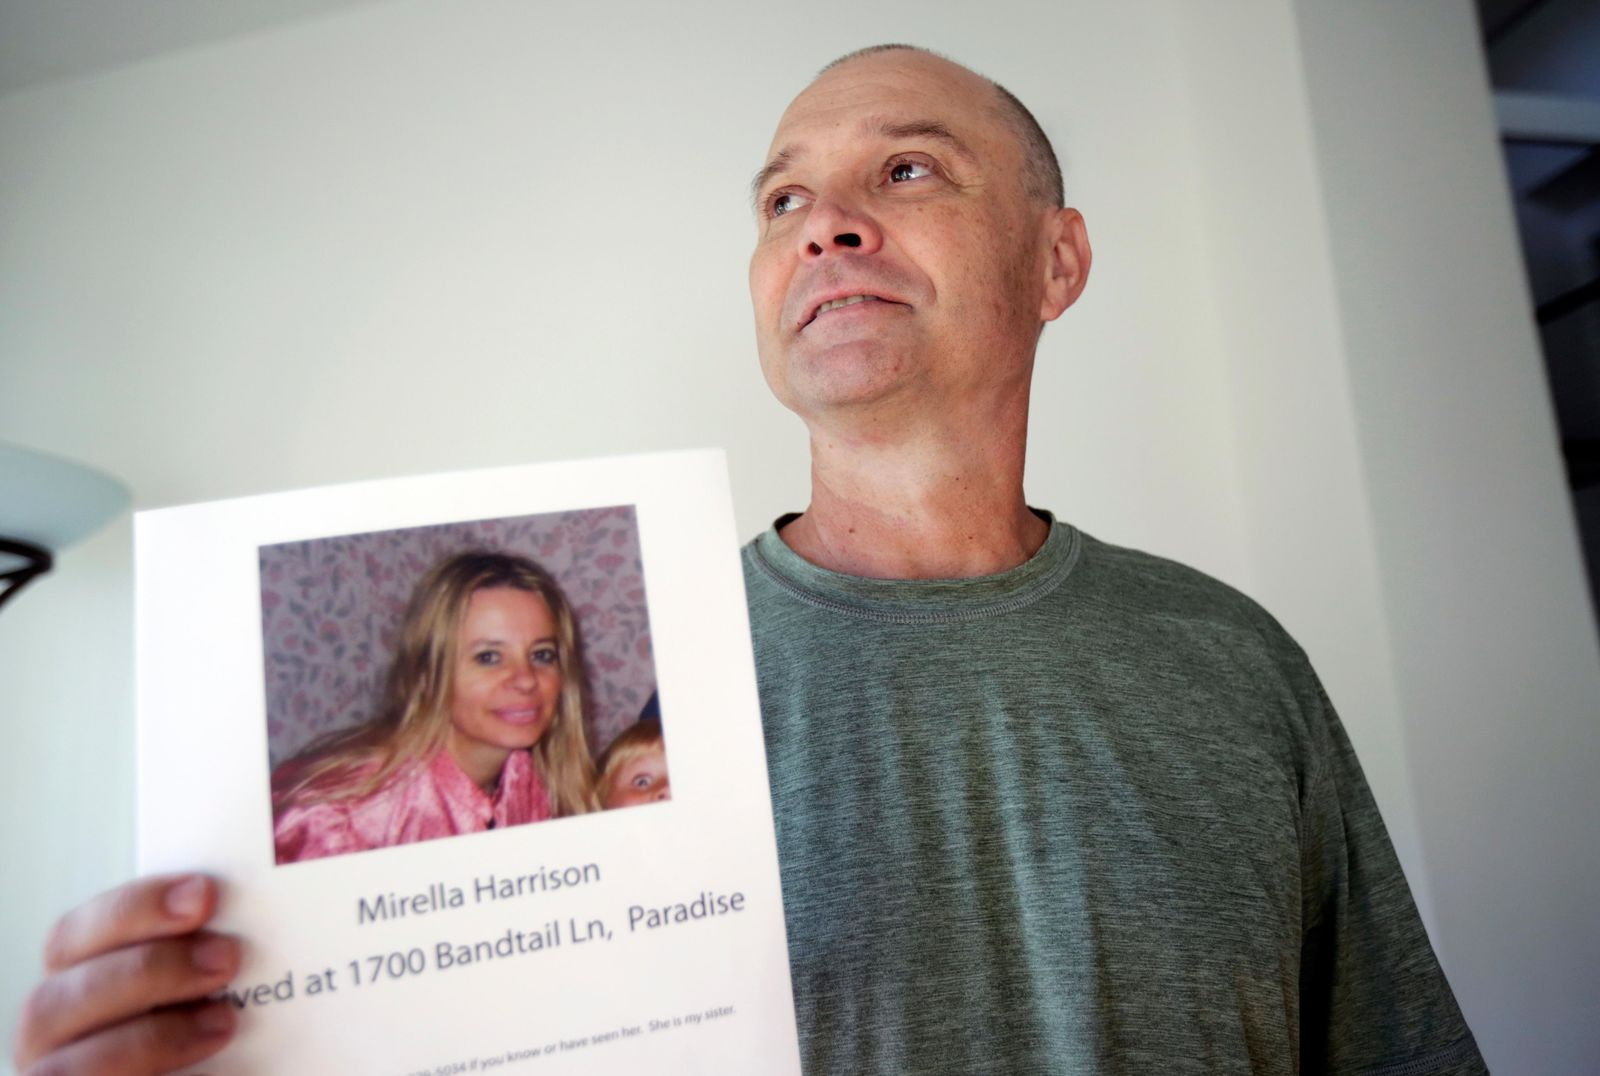 In this Nov. 27, 2018, photo, Bill Engfelt poses for a portrait holding the flyer he made while searching for information on his sister, Mirella Harrison, in Solana Beach, Calif. After a lengthy search, she was found safe. (AP Photo/Gregory Bull)